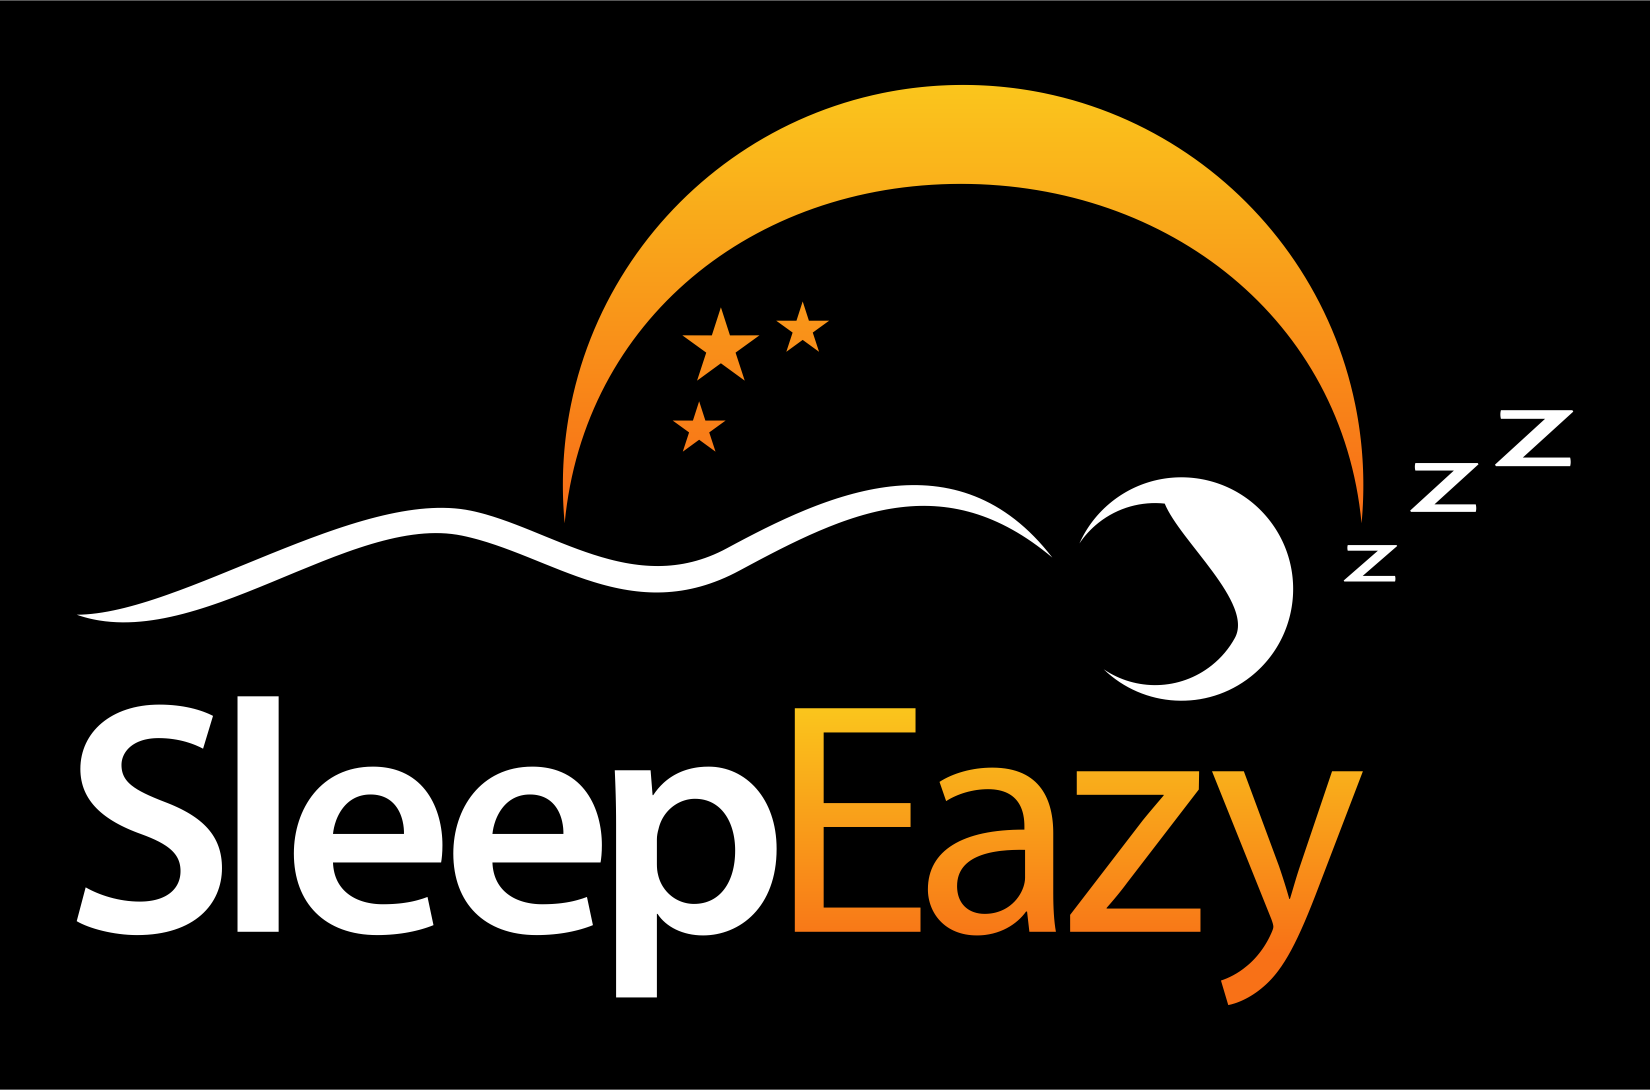 Creating a logo and website template for a website about sleep